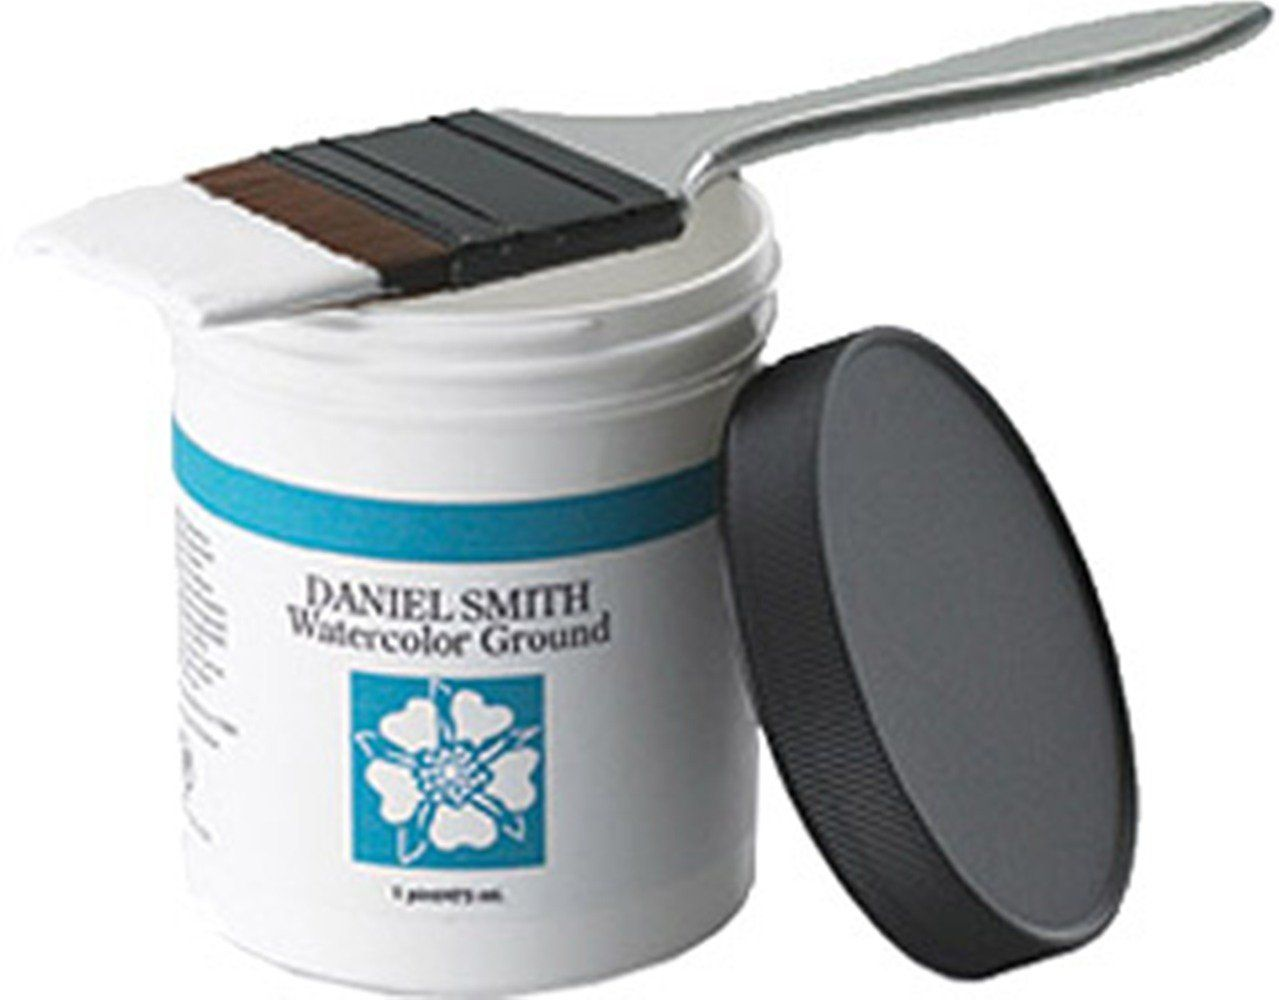 Daniel Smith 1 Pint Watercolor Ground Jar More Info Could Be